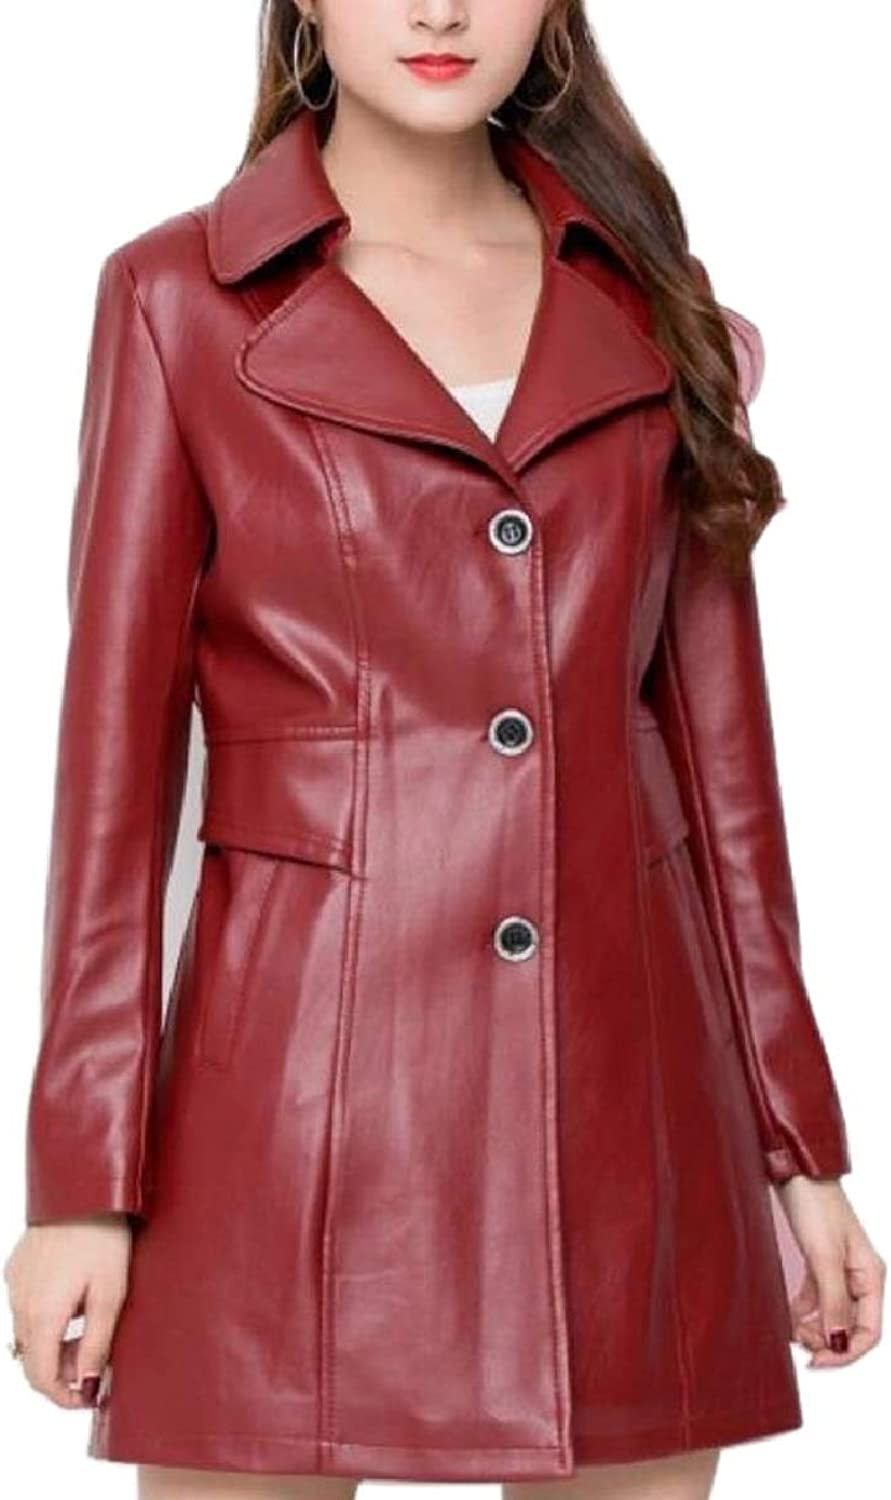 LEISHOP Women's Pure color Mid Length Trench PU Leather Single Breasted Outerwear